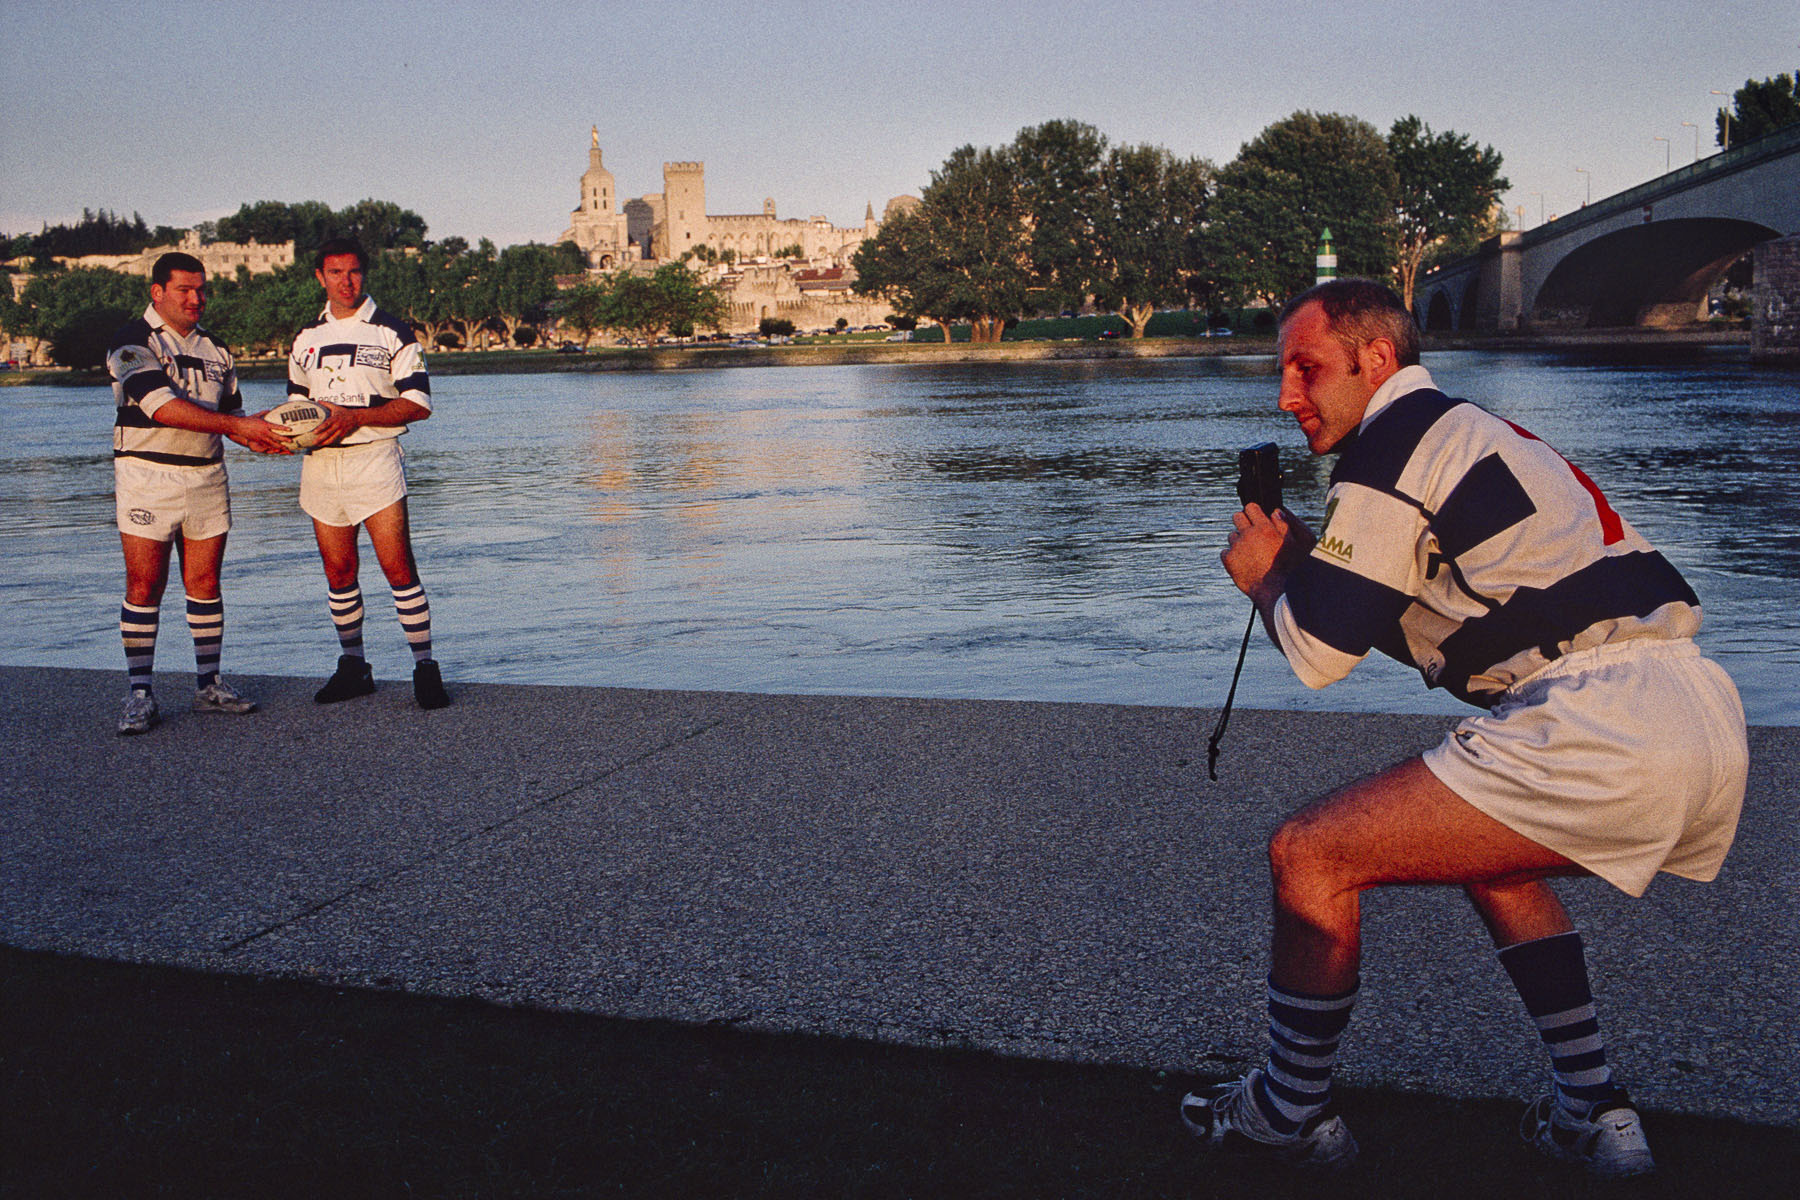 Rugby players taking pictures by the Rhone river. 2000